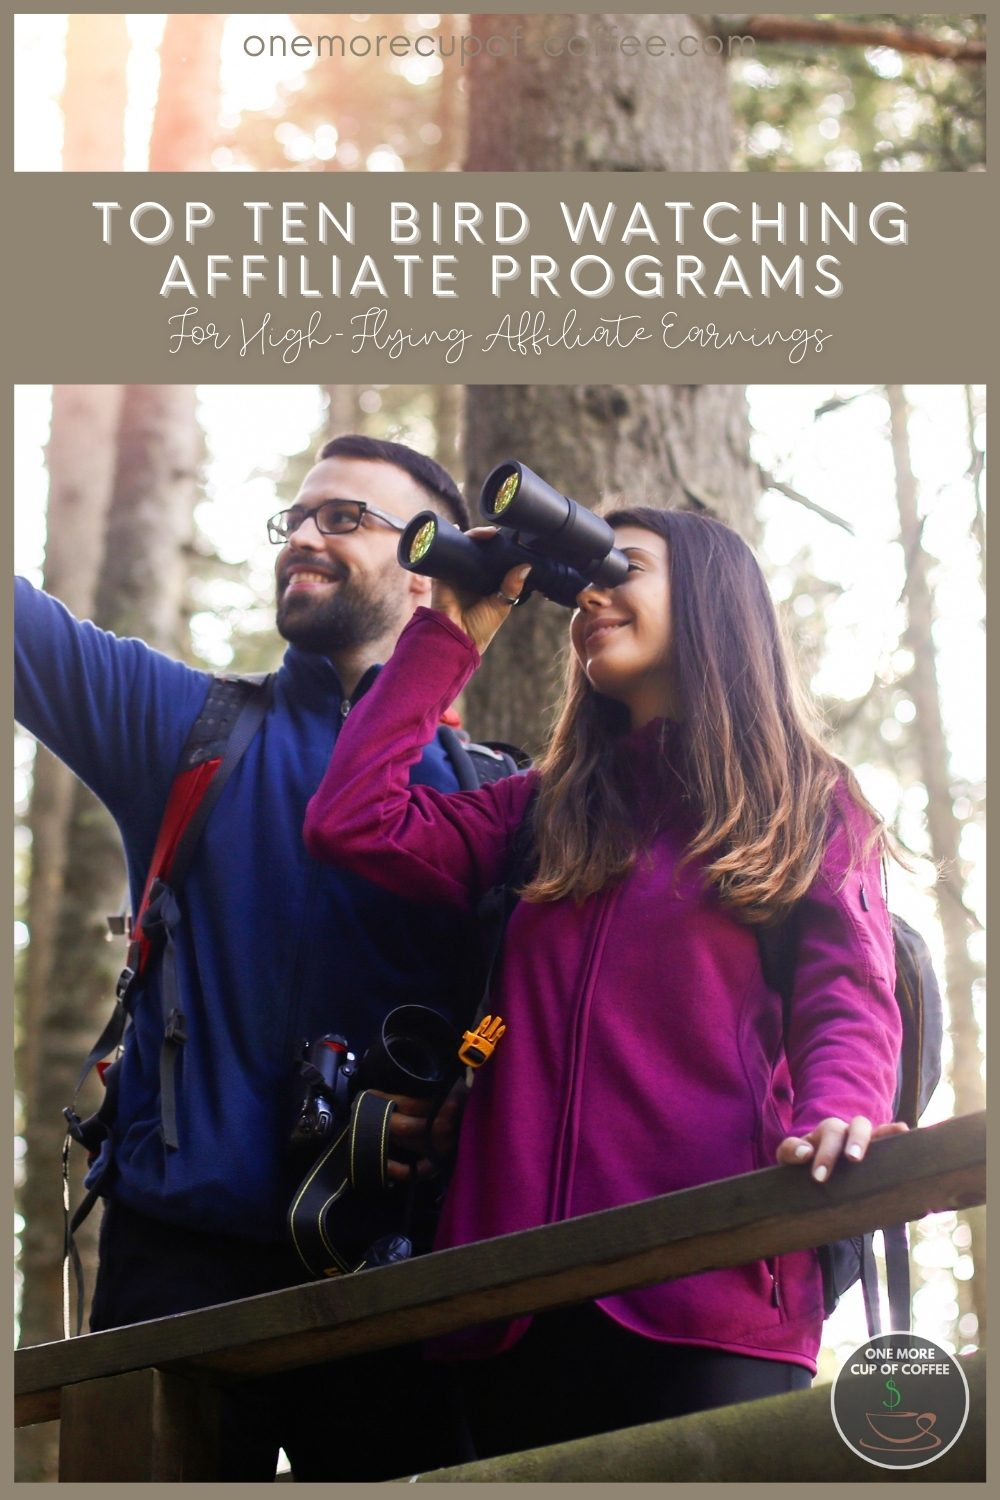 """A couple bird watching in a forest, the woman holding binoculars to her eyes, the man pointing at something; with text overlay """"Top Ten Bird Watching Affiliate Programs For High-Flying Affiliate Earnings"""""""